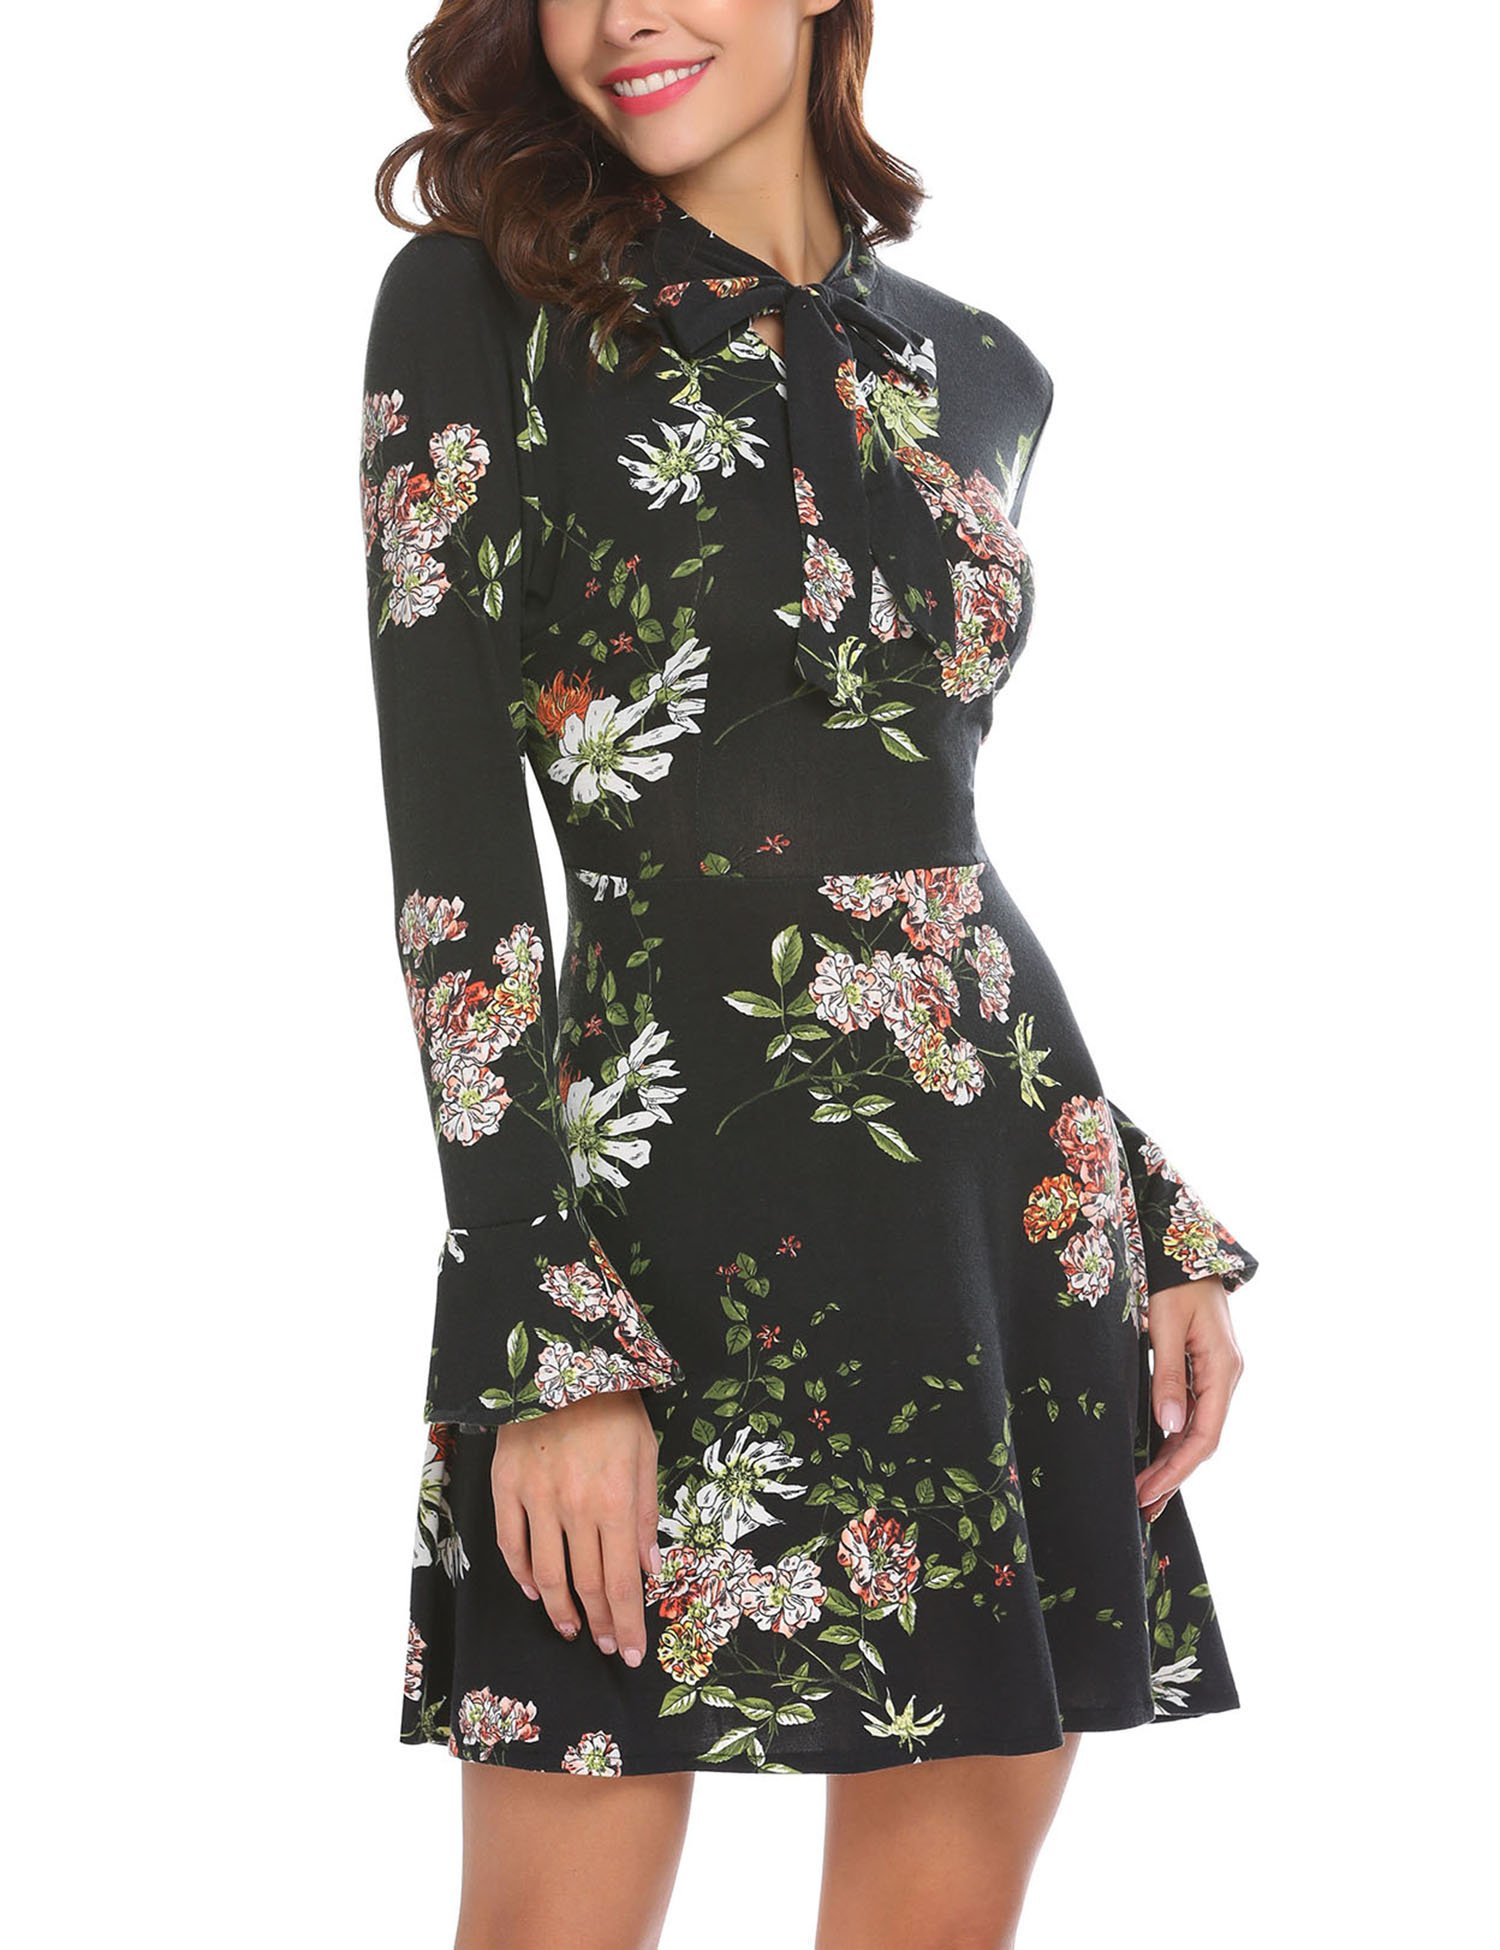 ACEVOG Women's Casual Floral Print Bell Sleeve Fit and Flare Dress (X-Large, Black) by ACEVOG (Image #2)